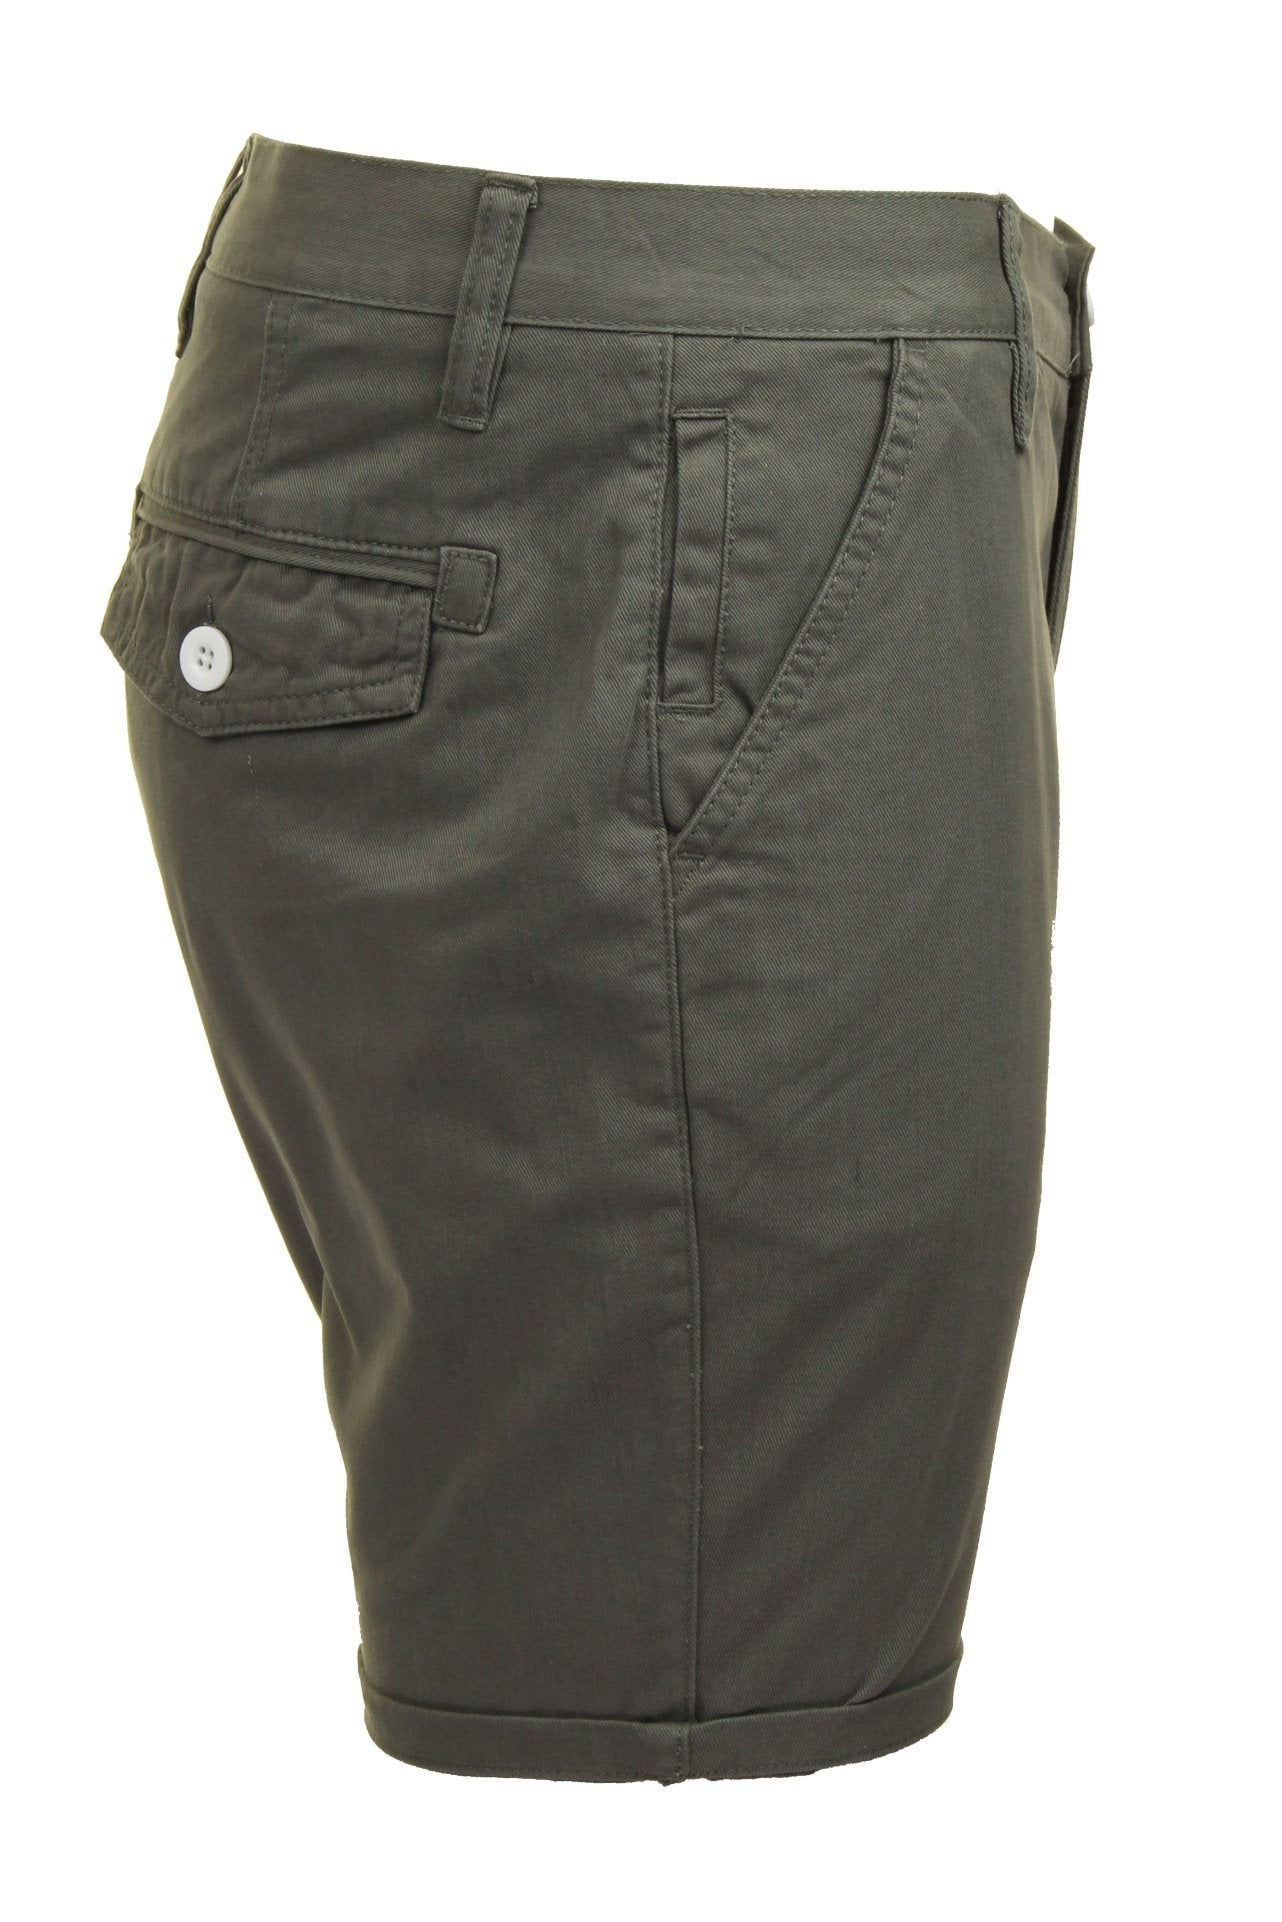 Mens Chino Short by Brave Soul 'Smith' Cotton Twill-2